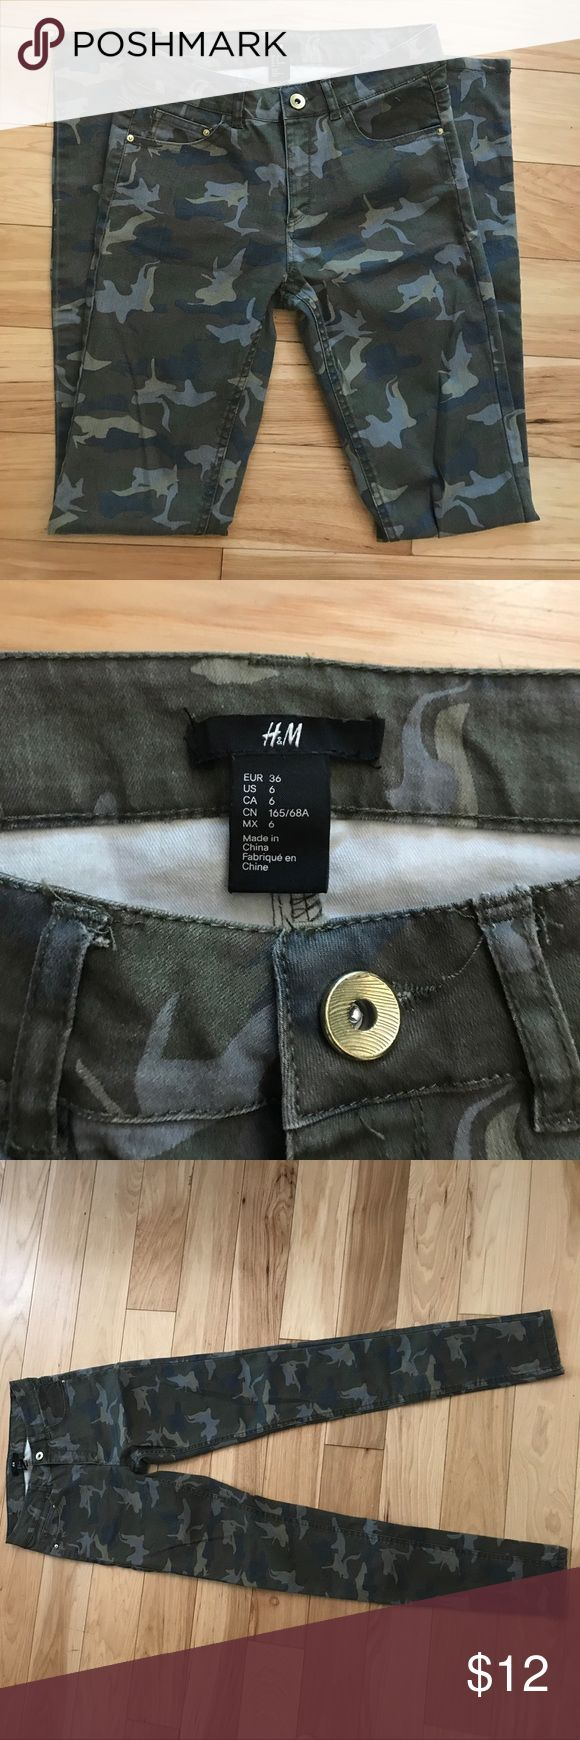 Camo skinny jeans Camo H&M skinny jeans, size 6, perfect condition only worn once!!! H&M Pants Skinny